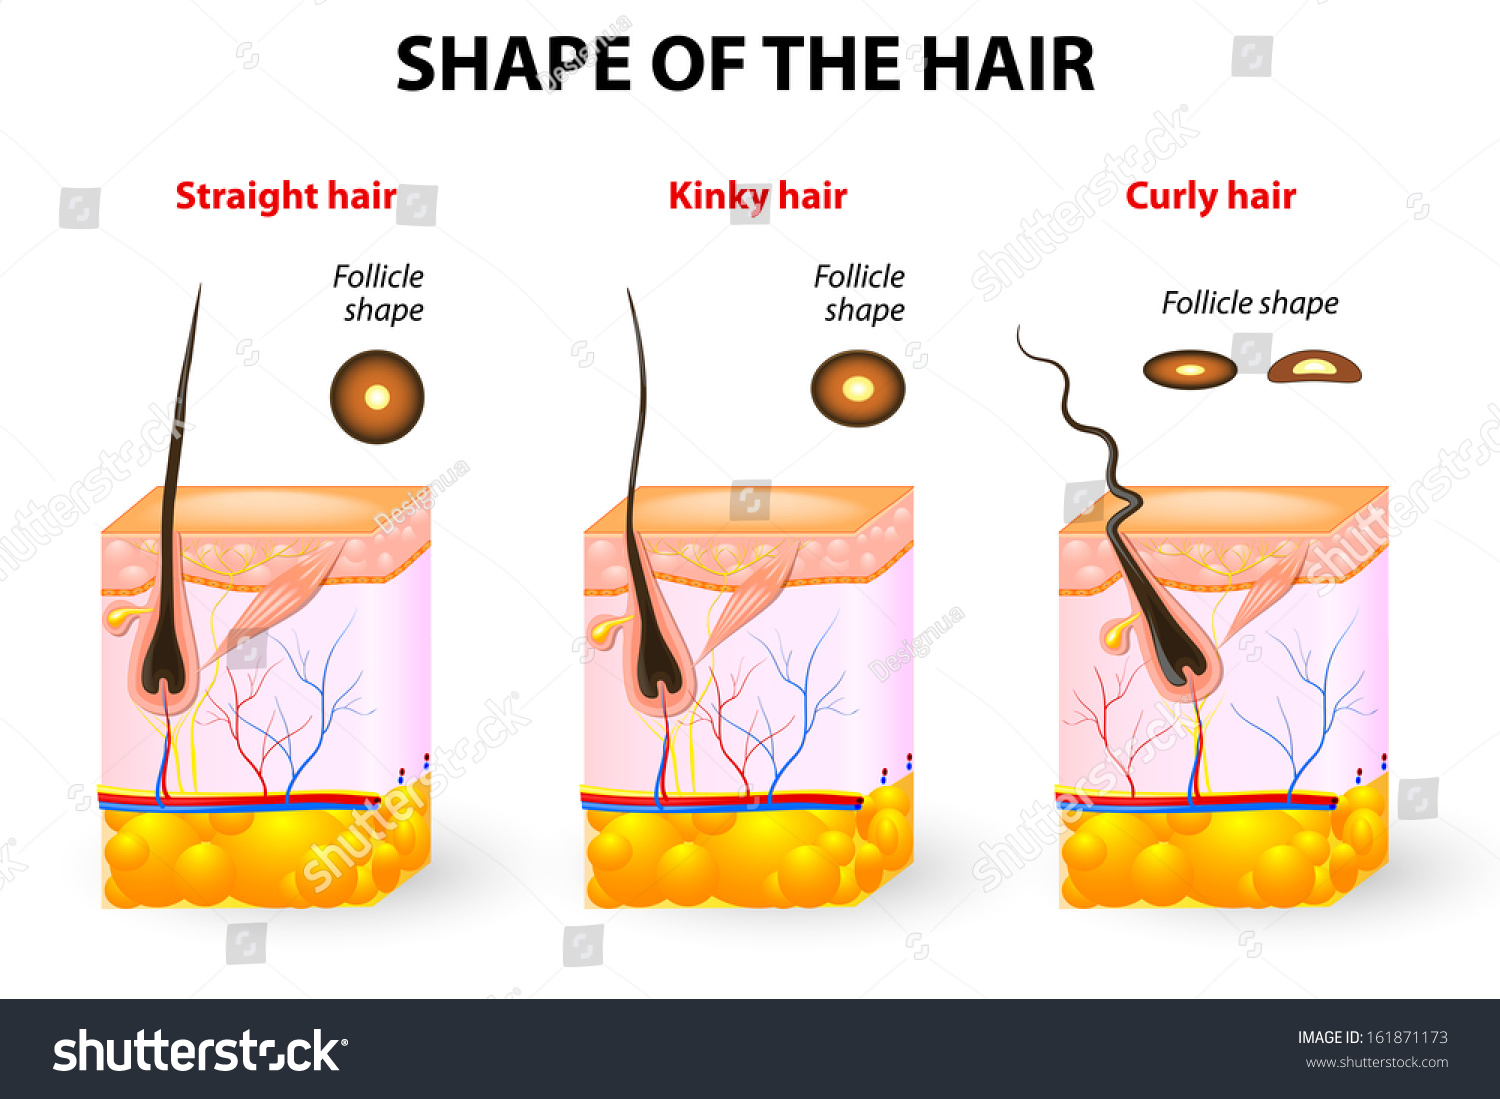 Hairdressing Consultation - Lessons - Tes Teach